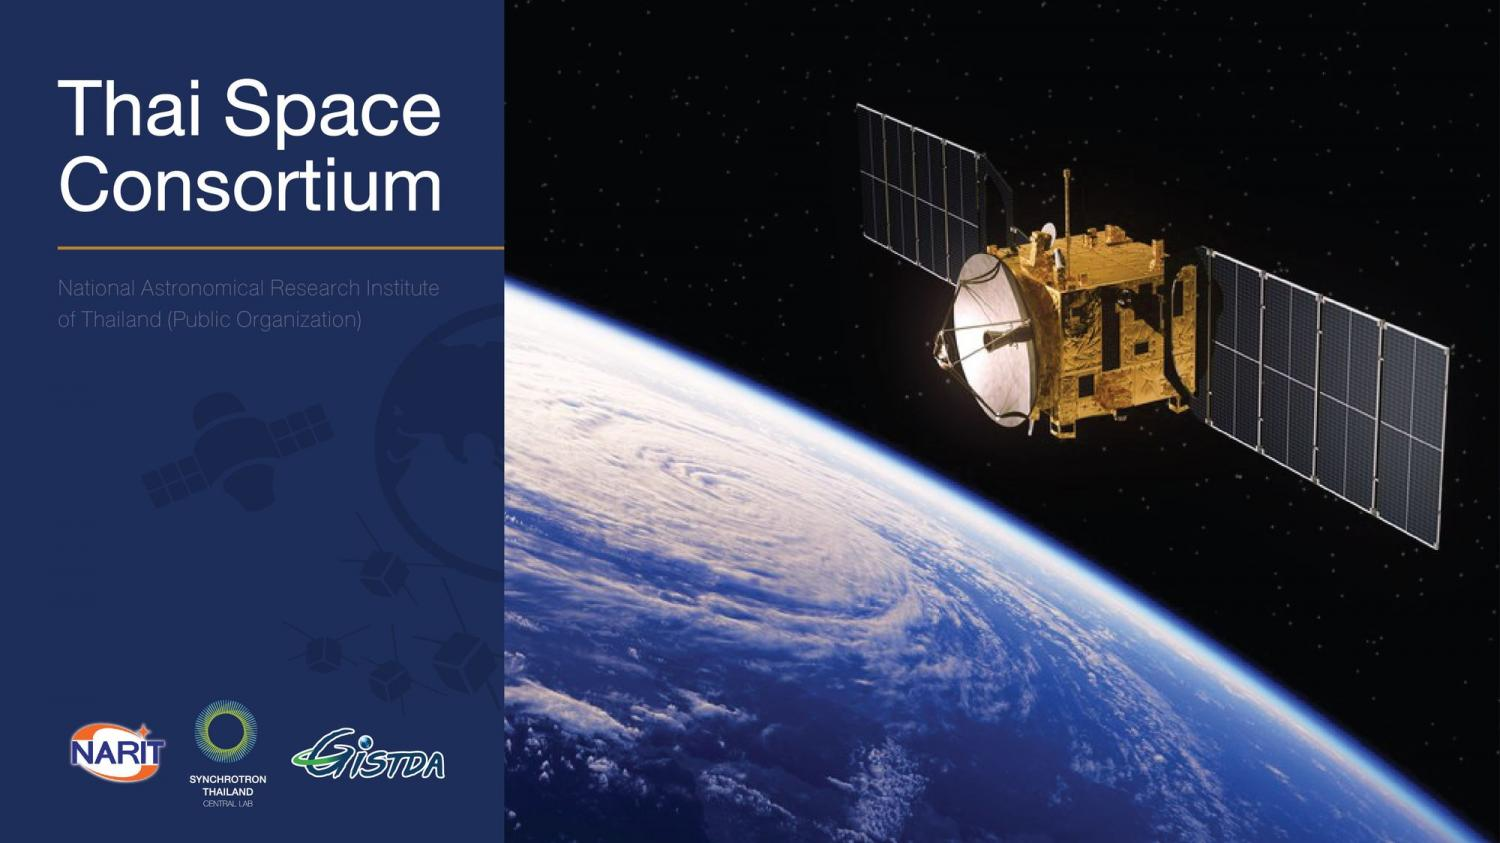 The government is teaming up with partners to produce satellites in order to boost the country's space capabilities under the ambitious Thai Space Consortium project.National Astronomical Research Institute of Thailand photo